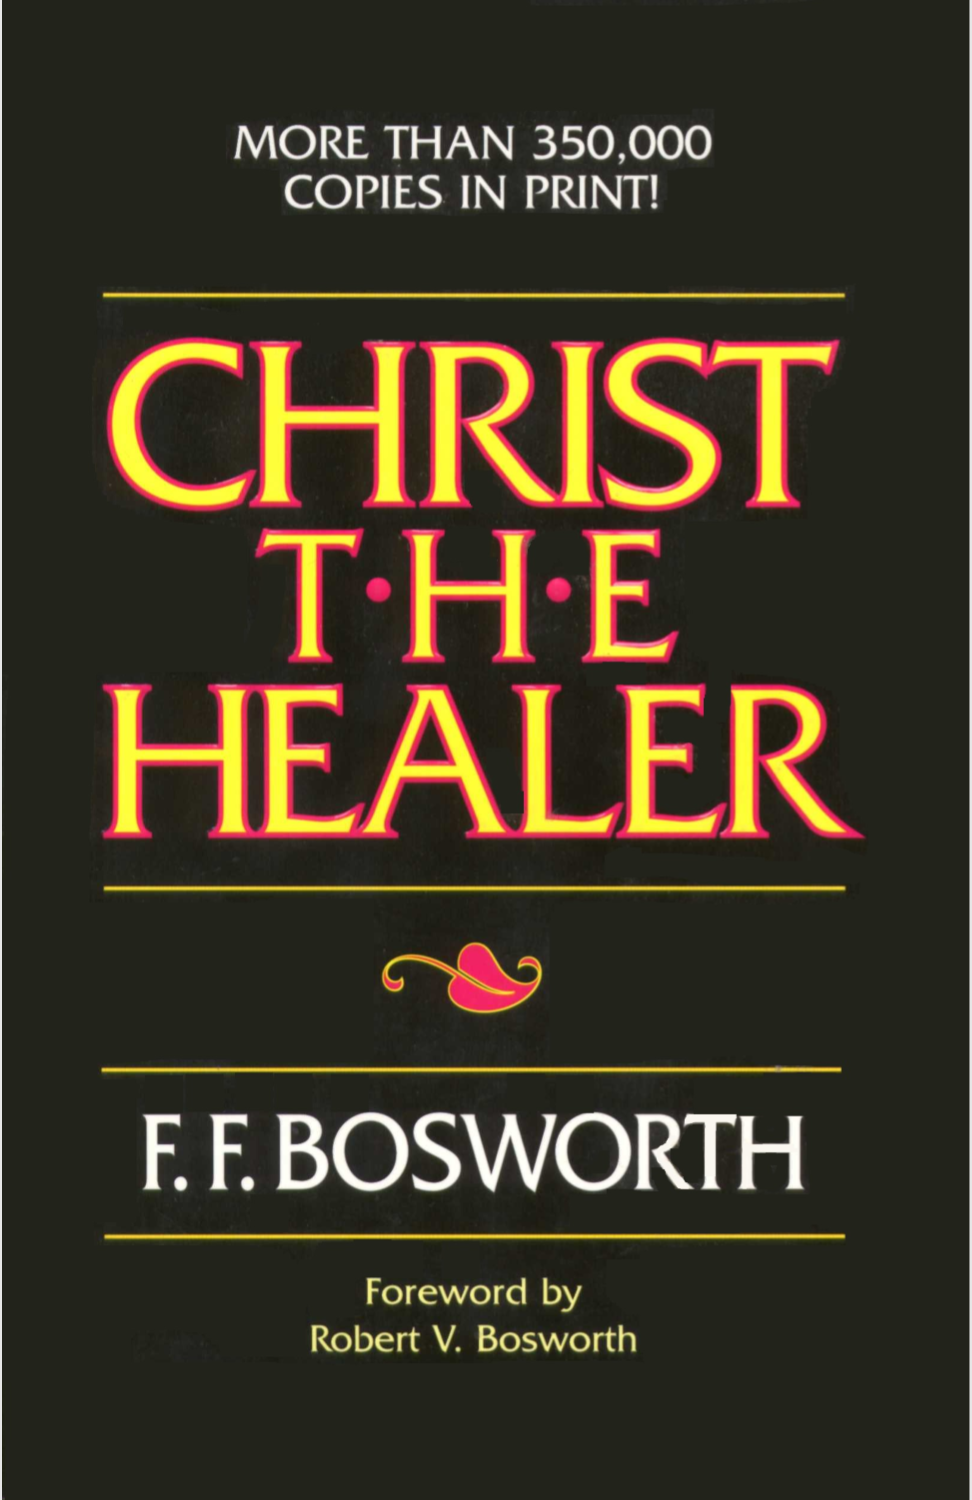 Bosworth offers a comprehensive discussion of healing, based on the premise that it's God's will for all Christians to be physically healed. First released in 1924, this classic on spiritual and physical healing has sold more than 350,000 copies.